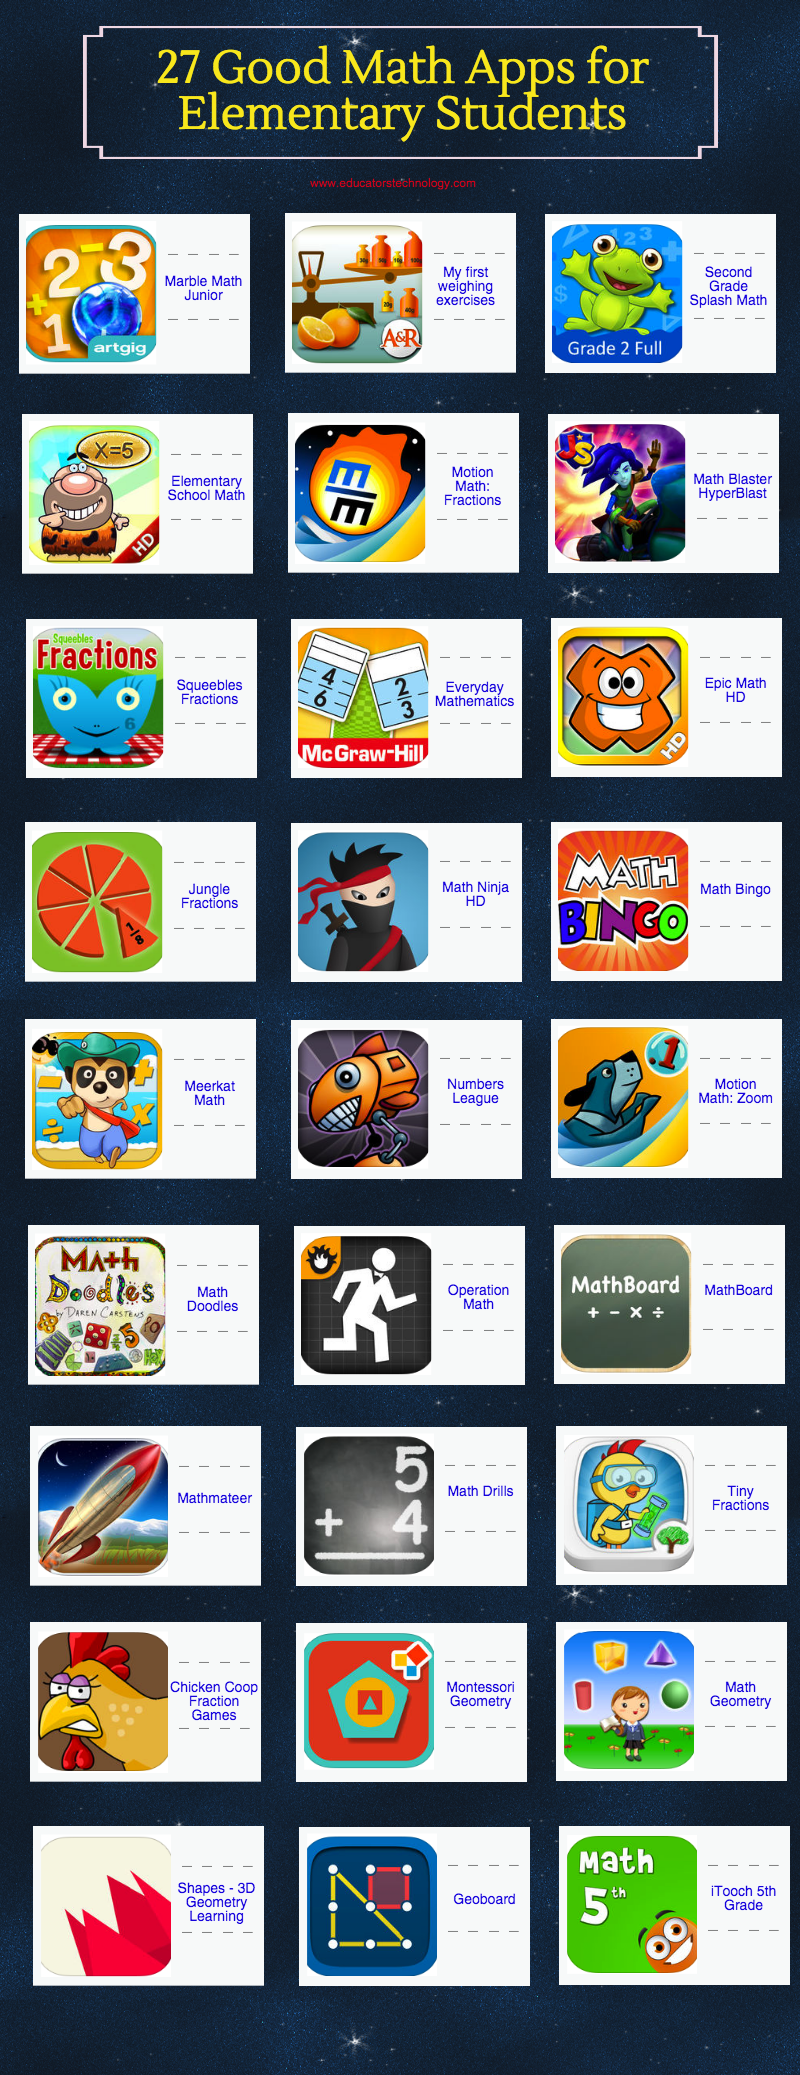 Over 20 Great Math Apps for Elementary Students